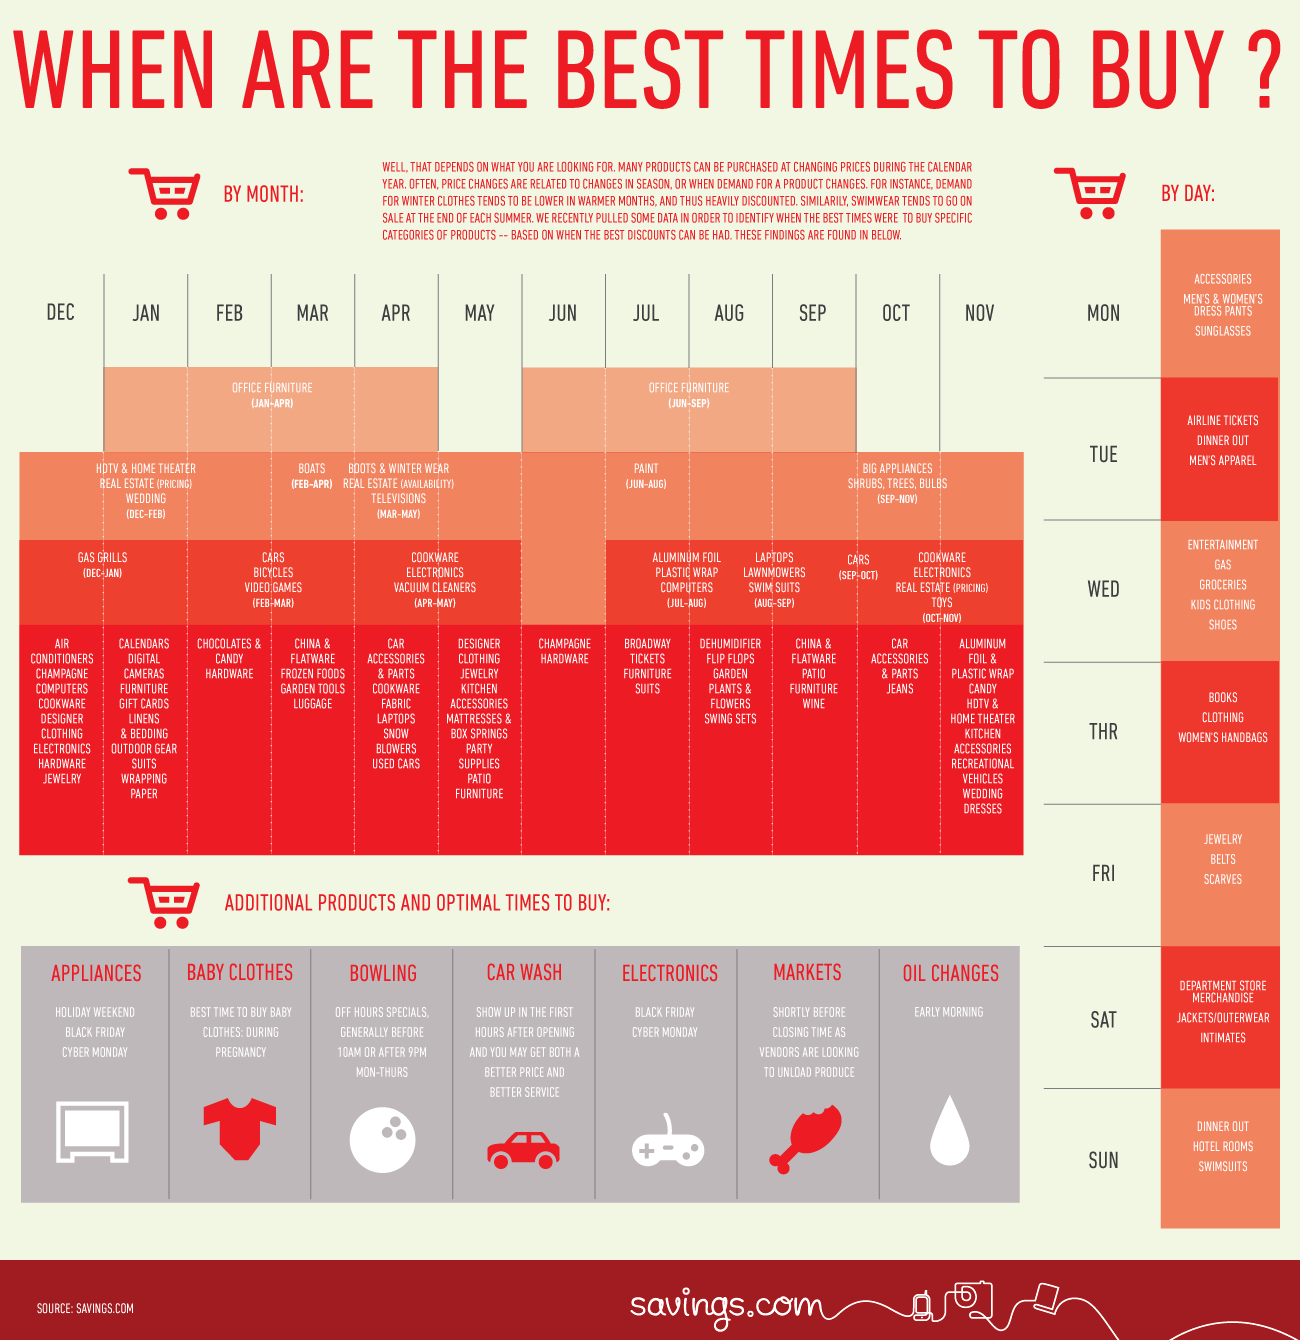 Best Times to Buy Infographic